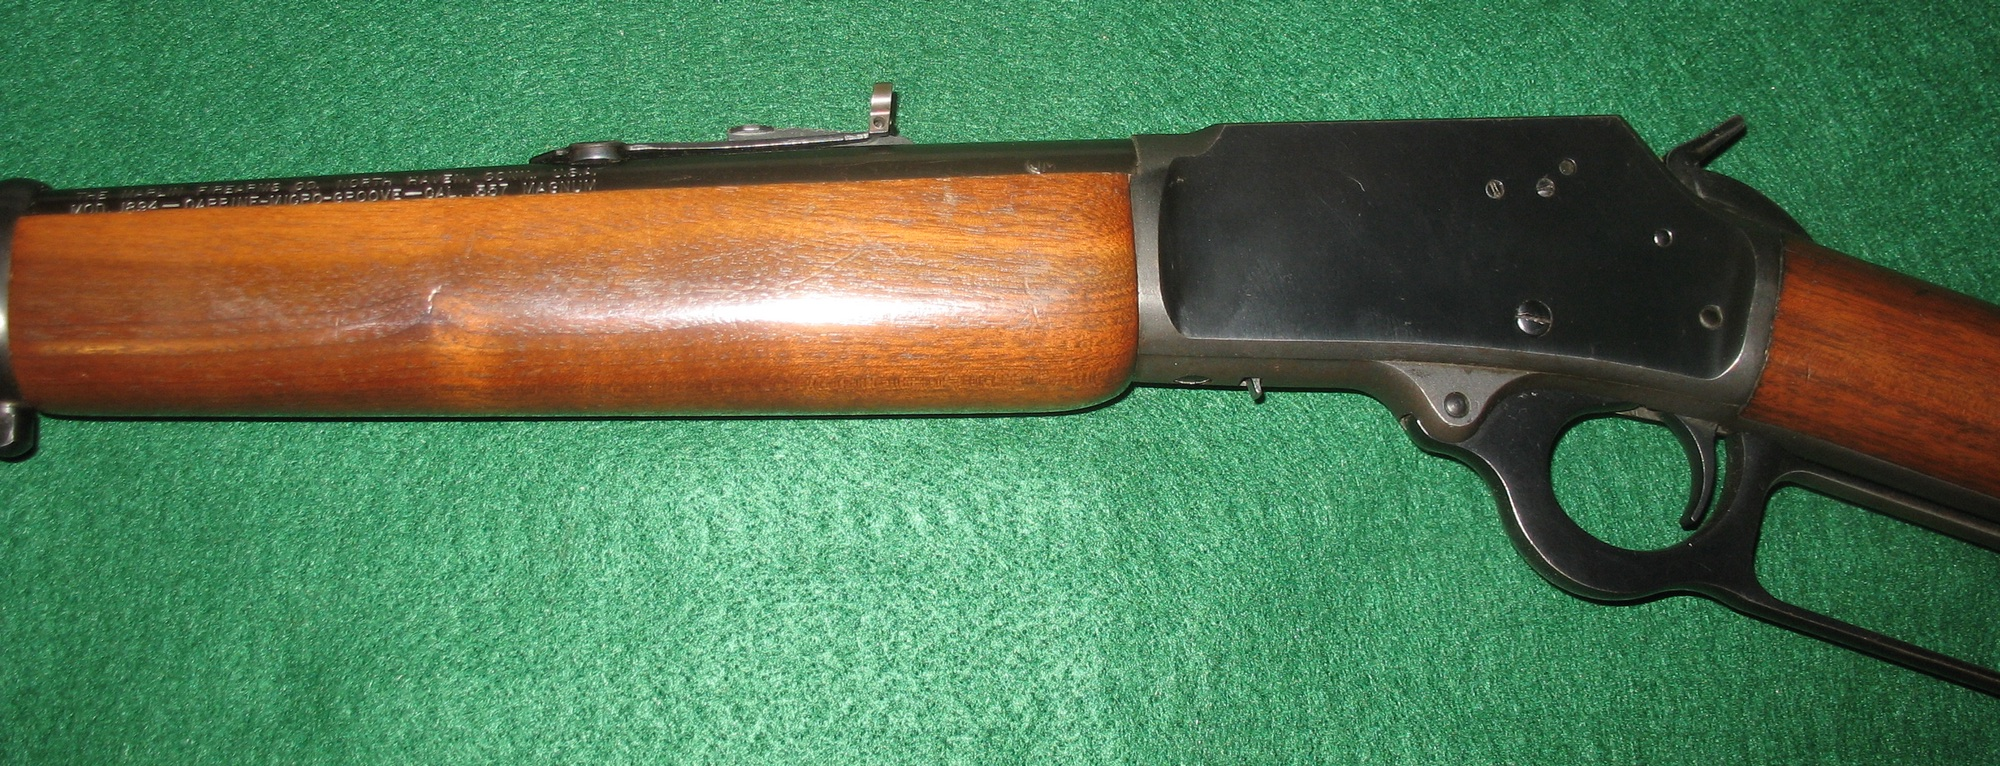 Marlin Carbine In 357 Mag My Guns For Sale